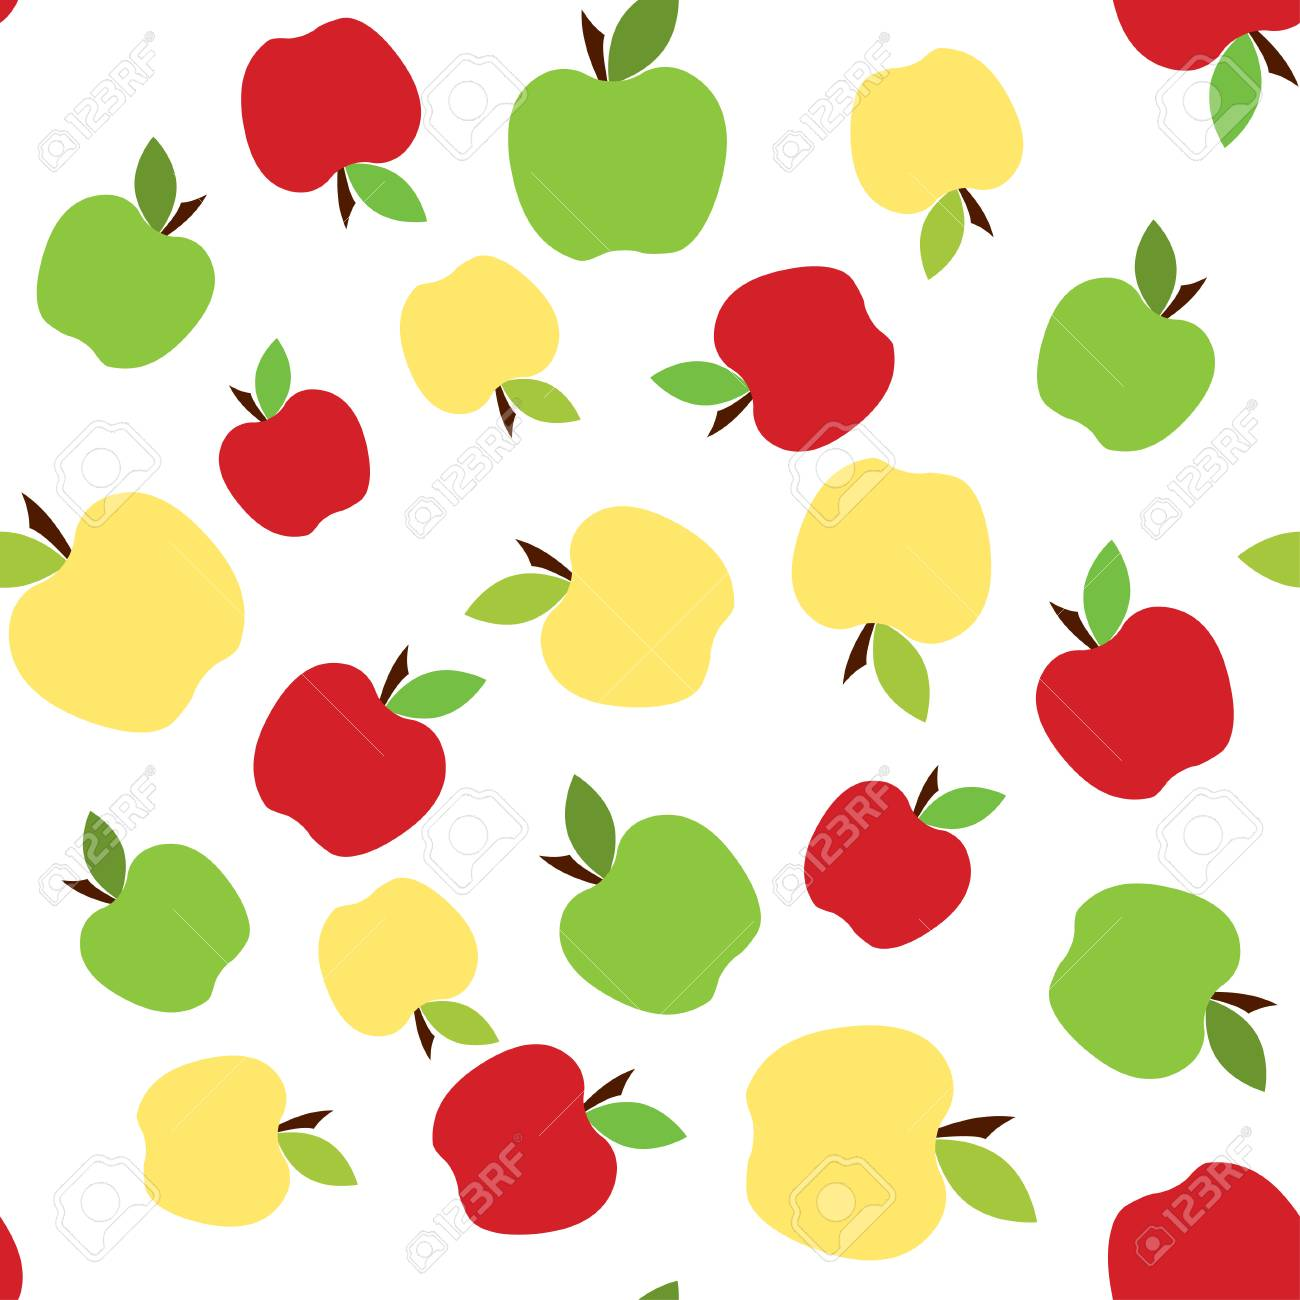 Green And Red Apples Seamless Pattern Background With Cute Fruits 1300x1300